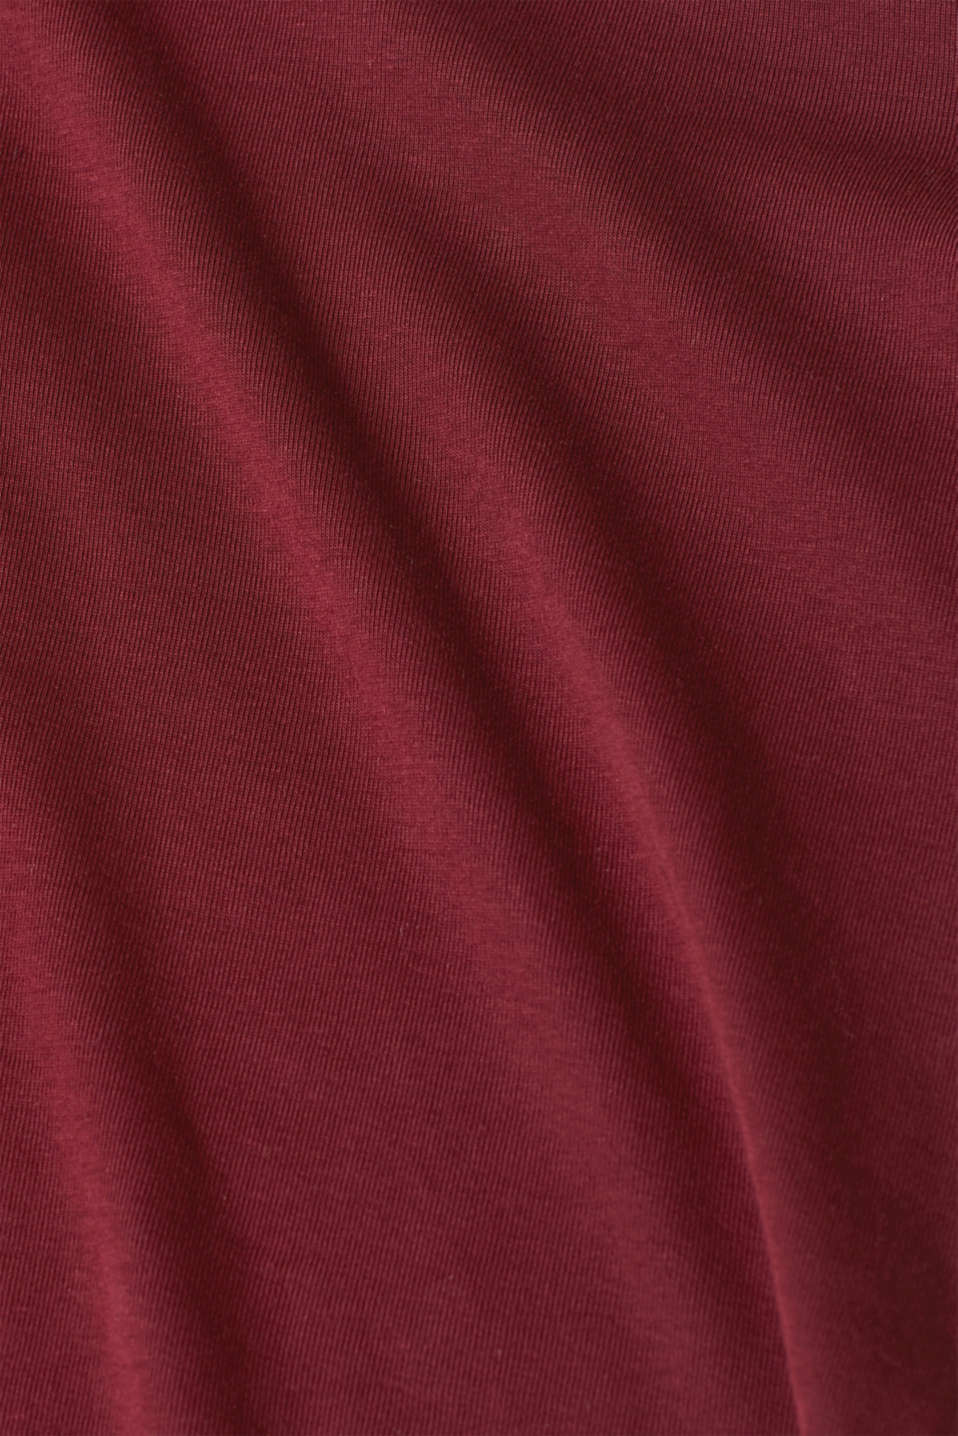 Long sleeve top with striped borders, 100% cotton, GARNET RED, detail image number 4